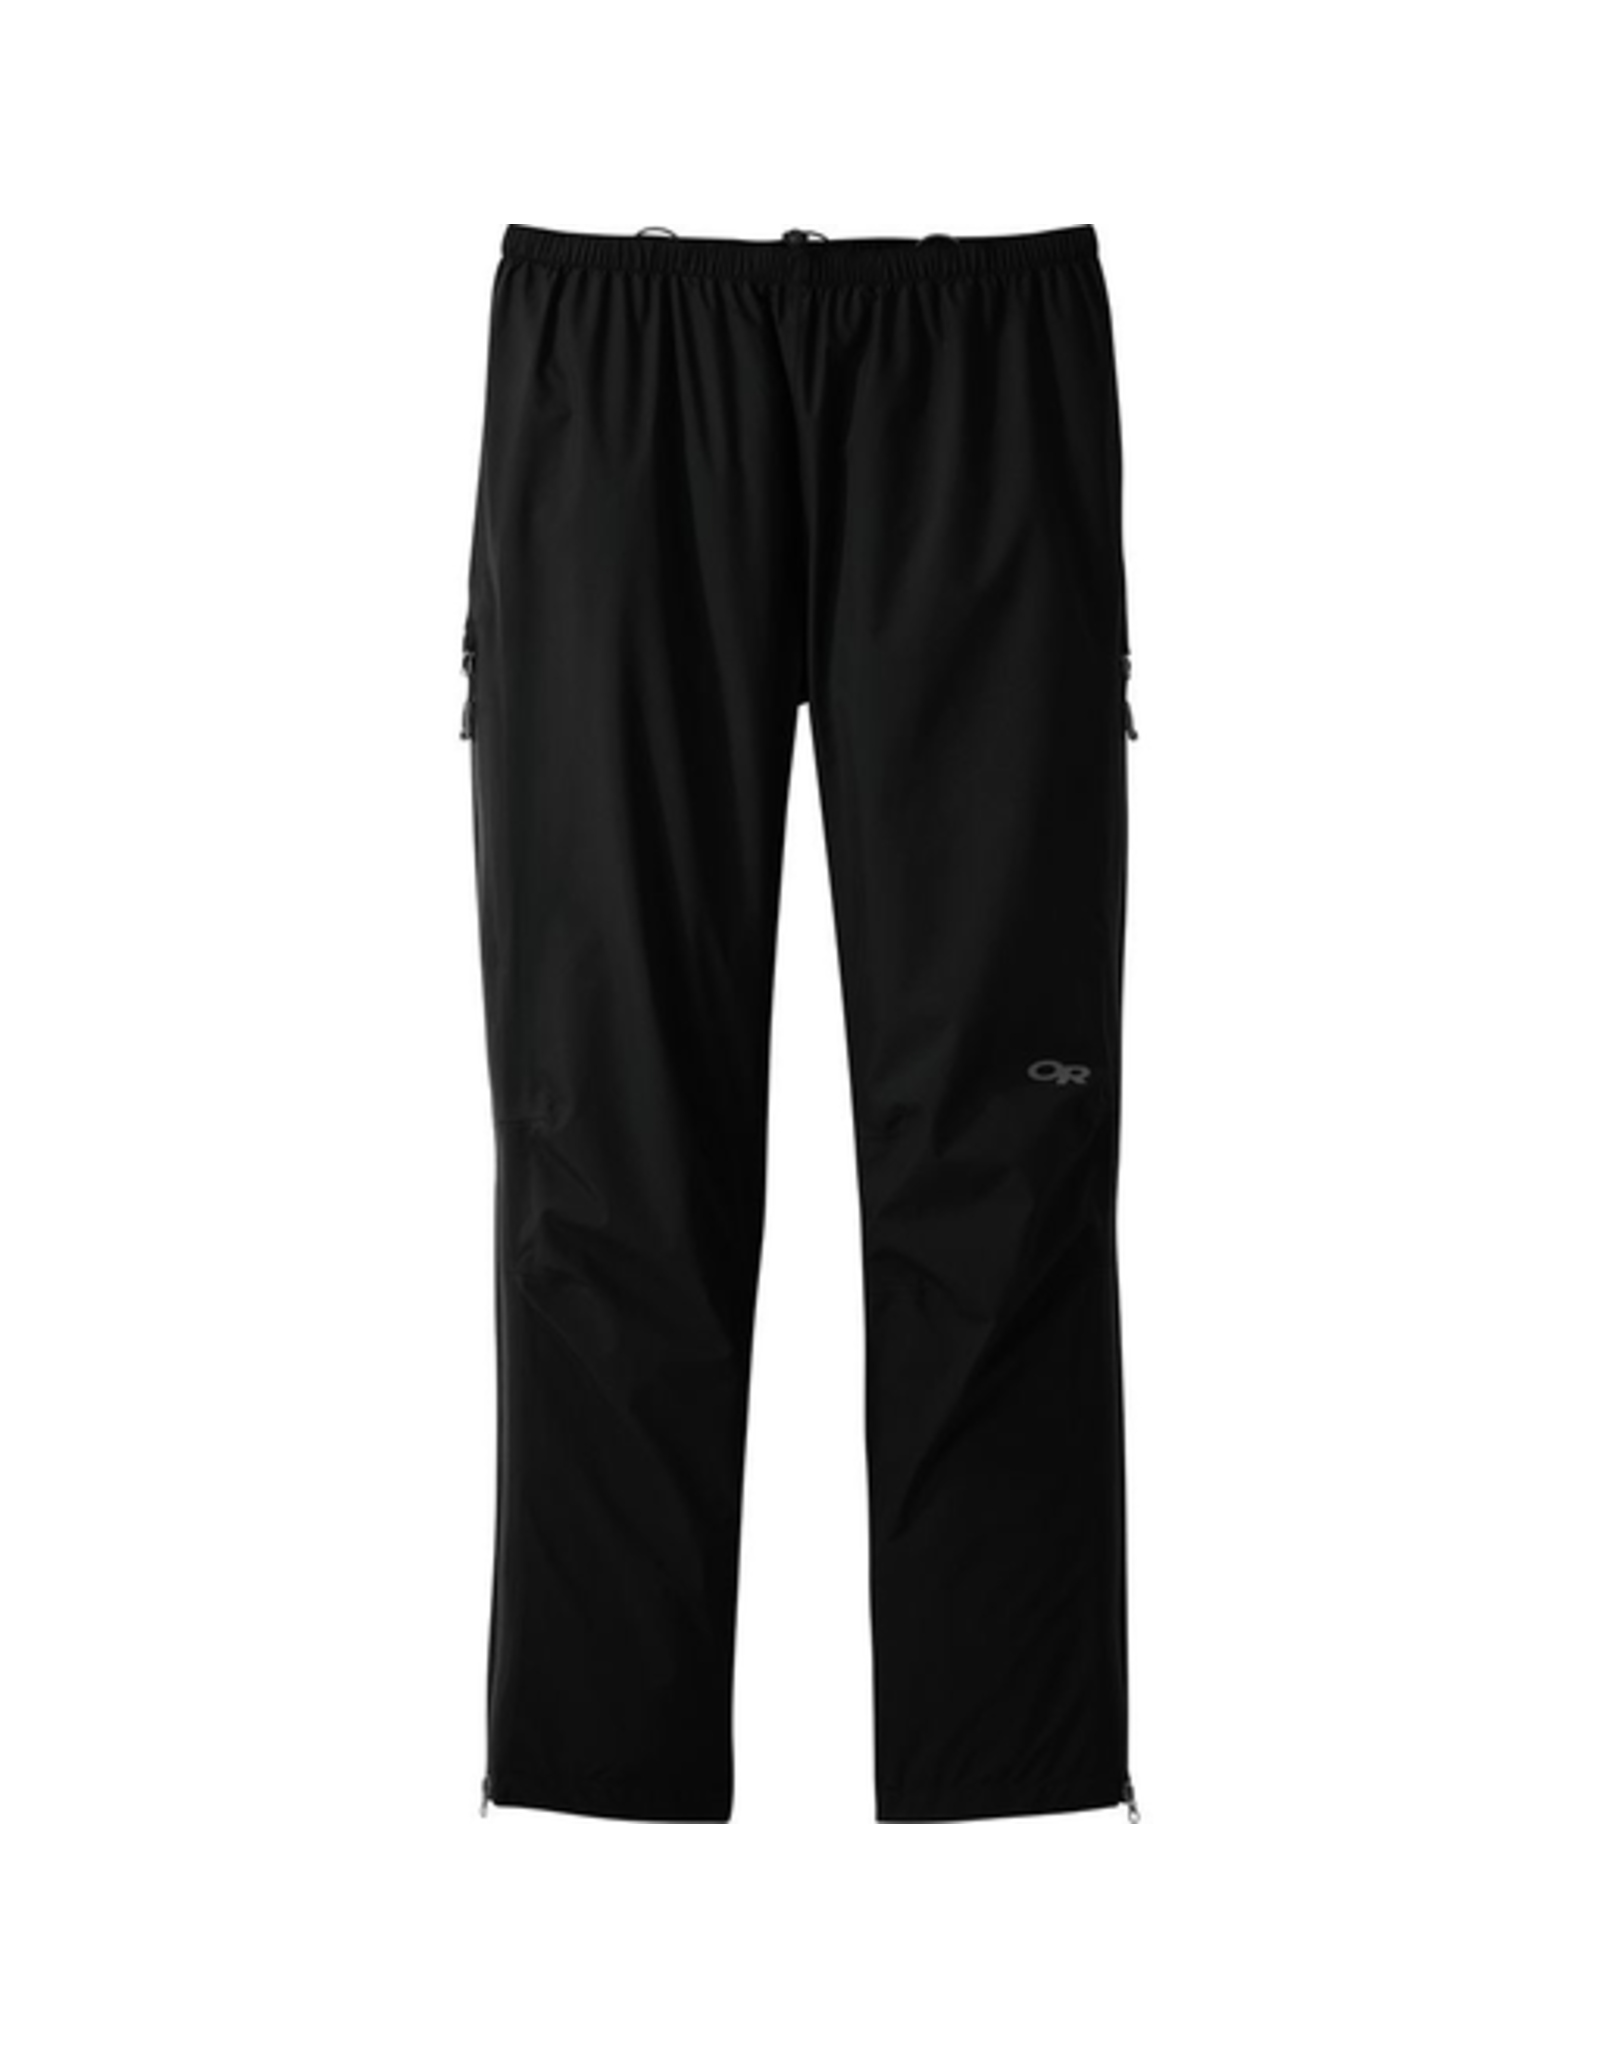 Outdoor Research Outdoor Research Men's Foray Pant